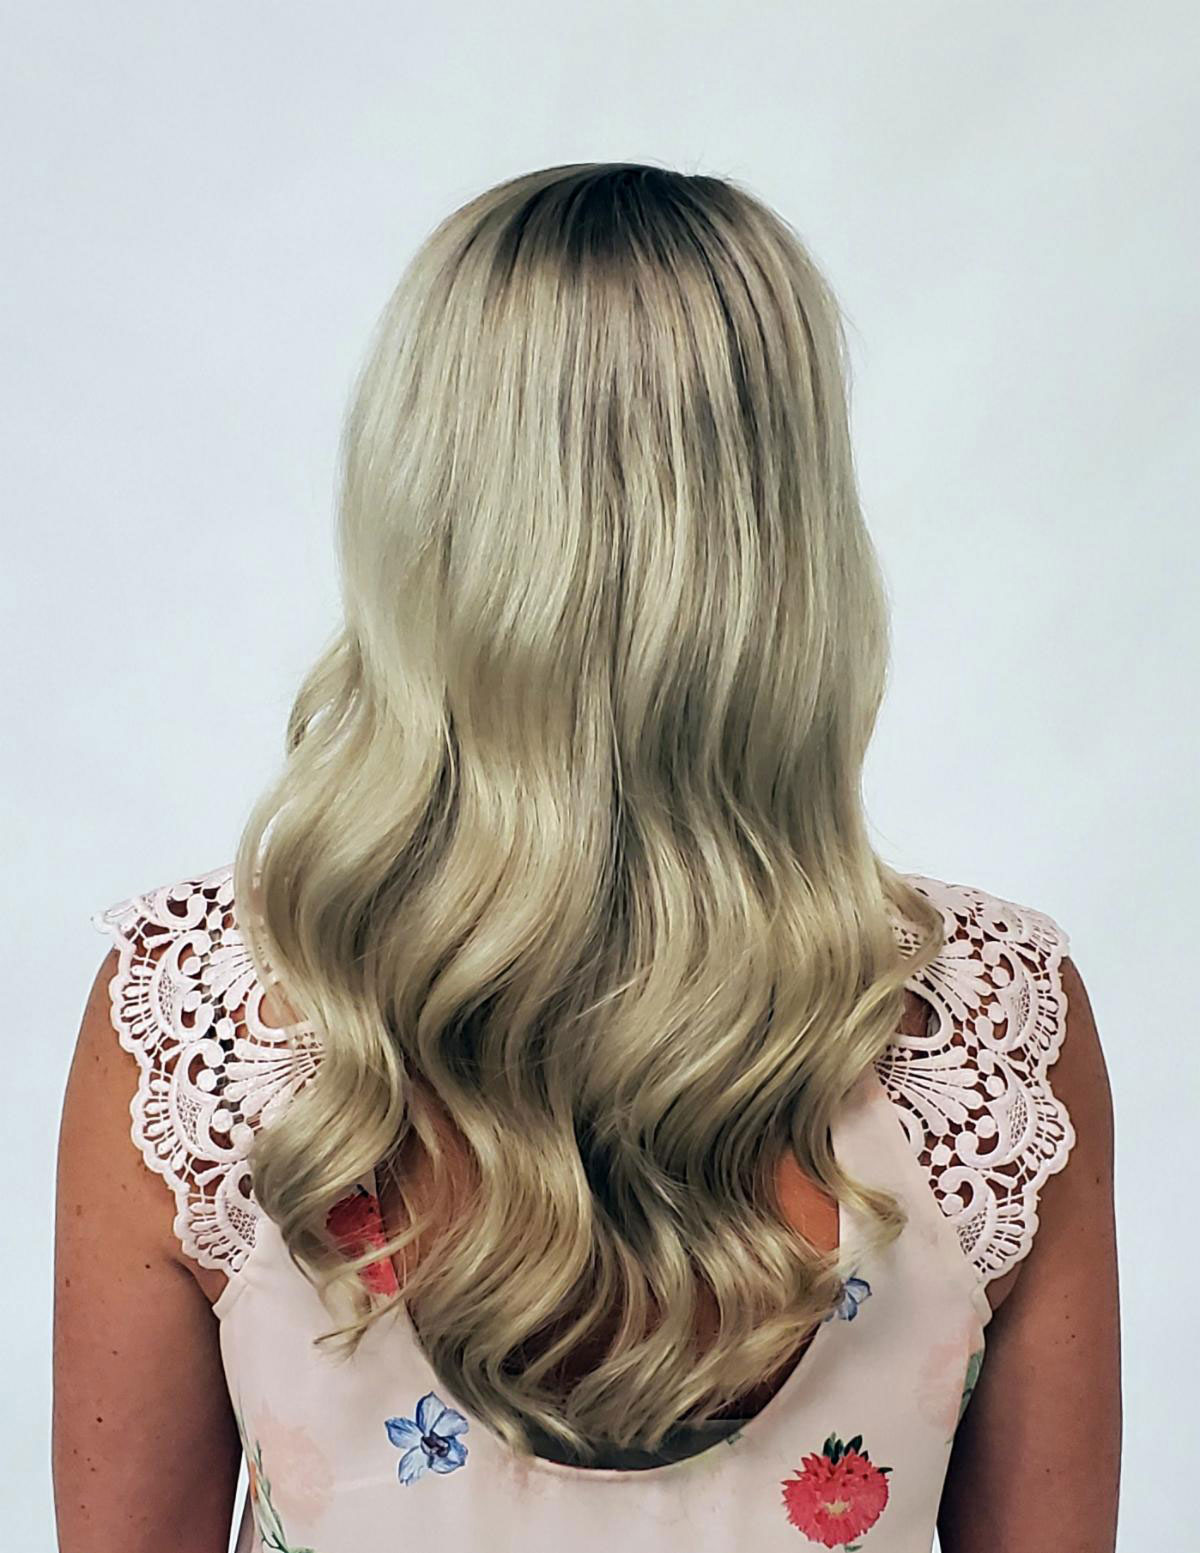 Icy Blonde: Correcting and Maintaining Brassy Highlights